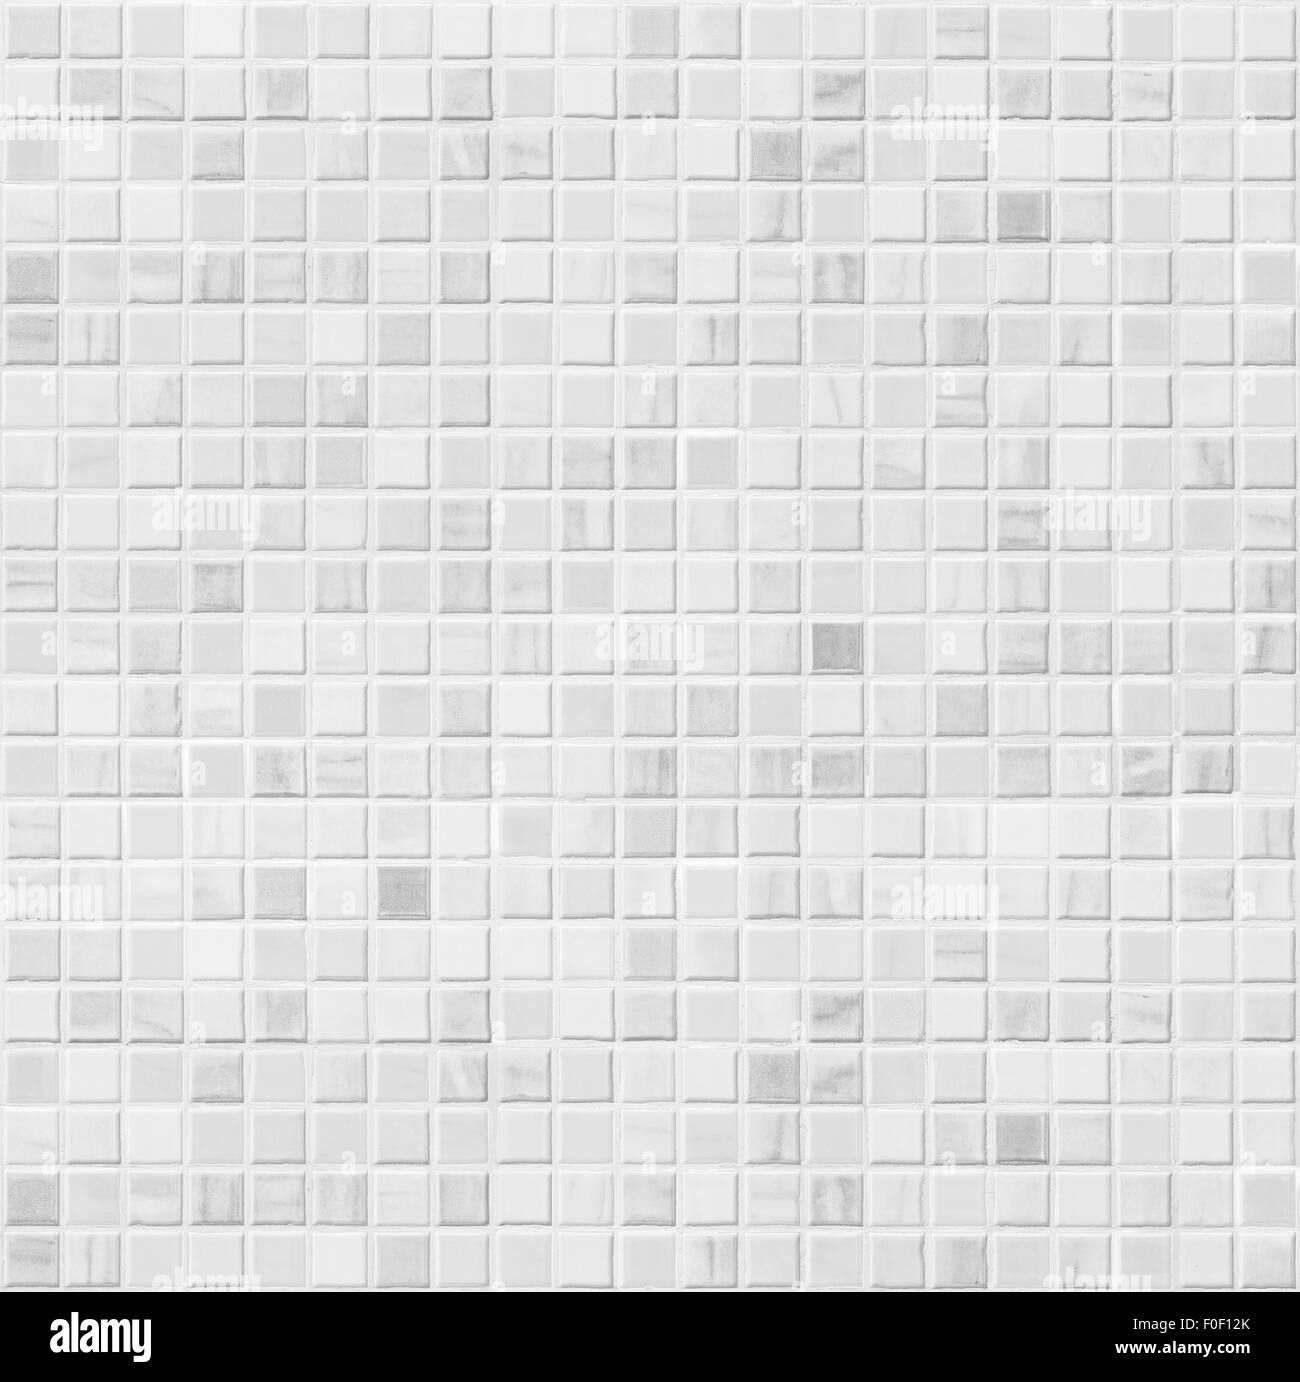 White ceramic bathroom wall tile seamless pattern stock for White ceramic tile bathroom